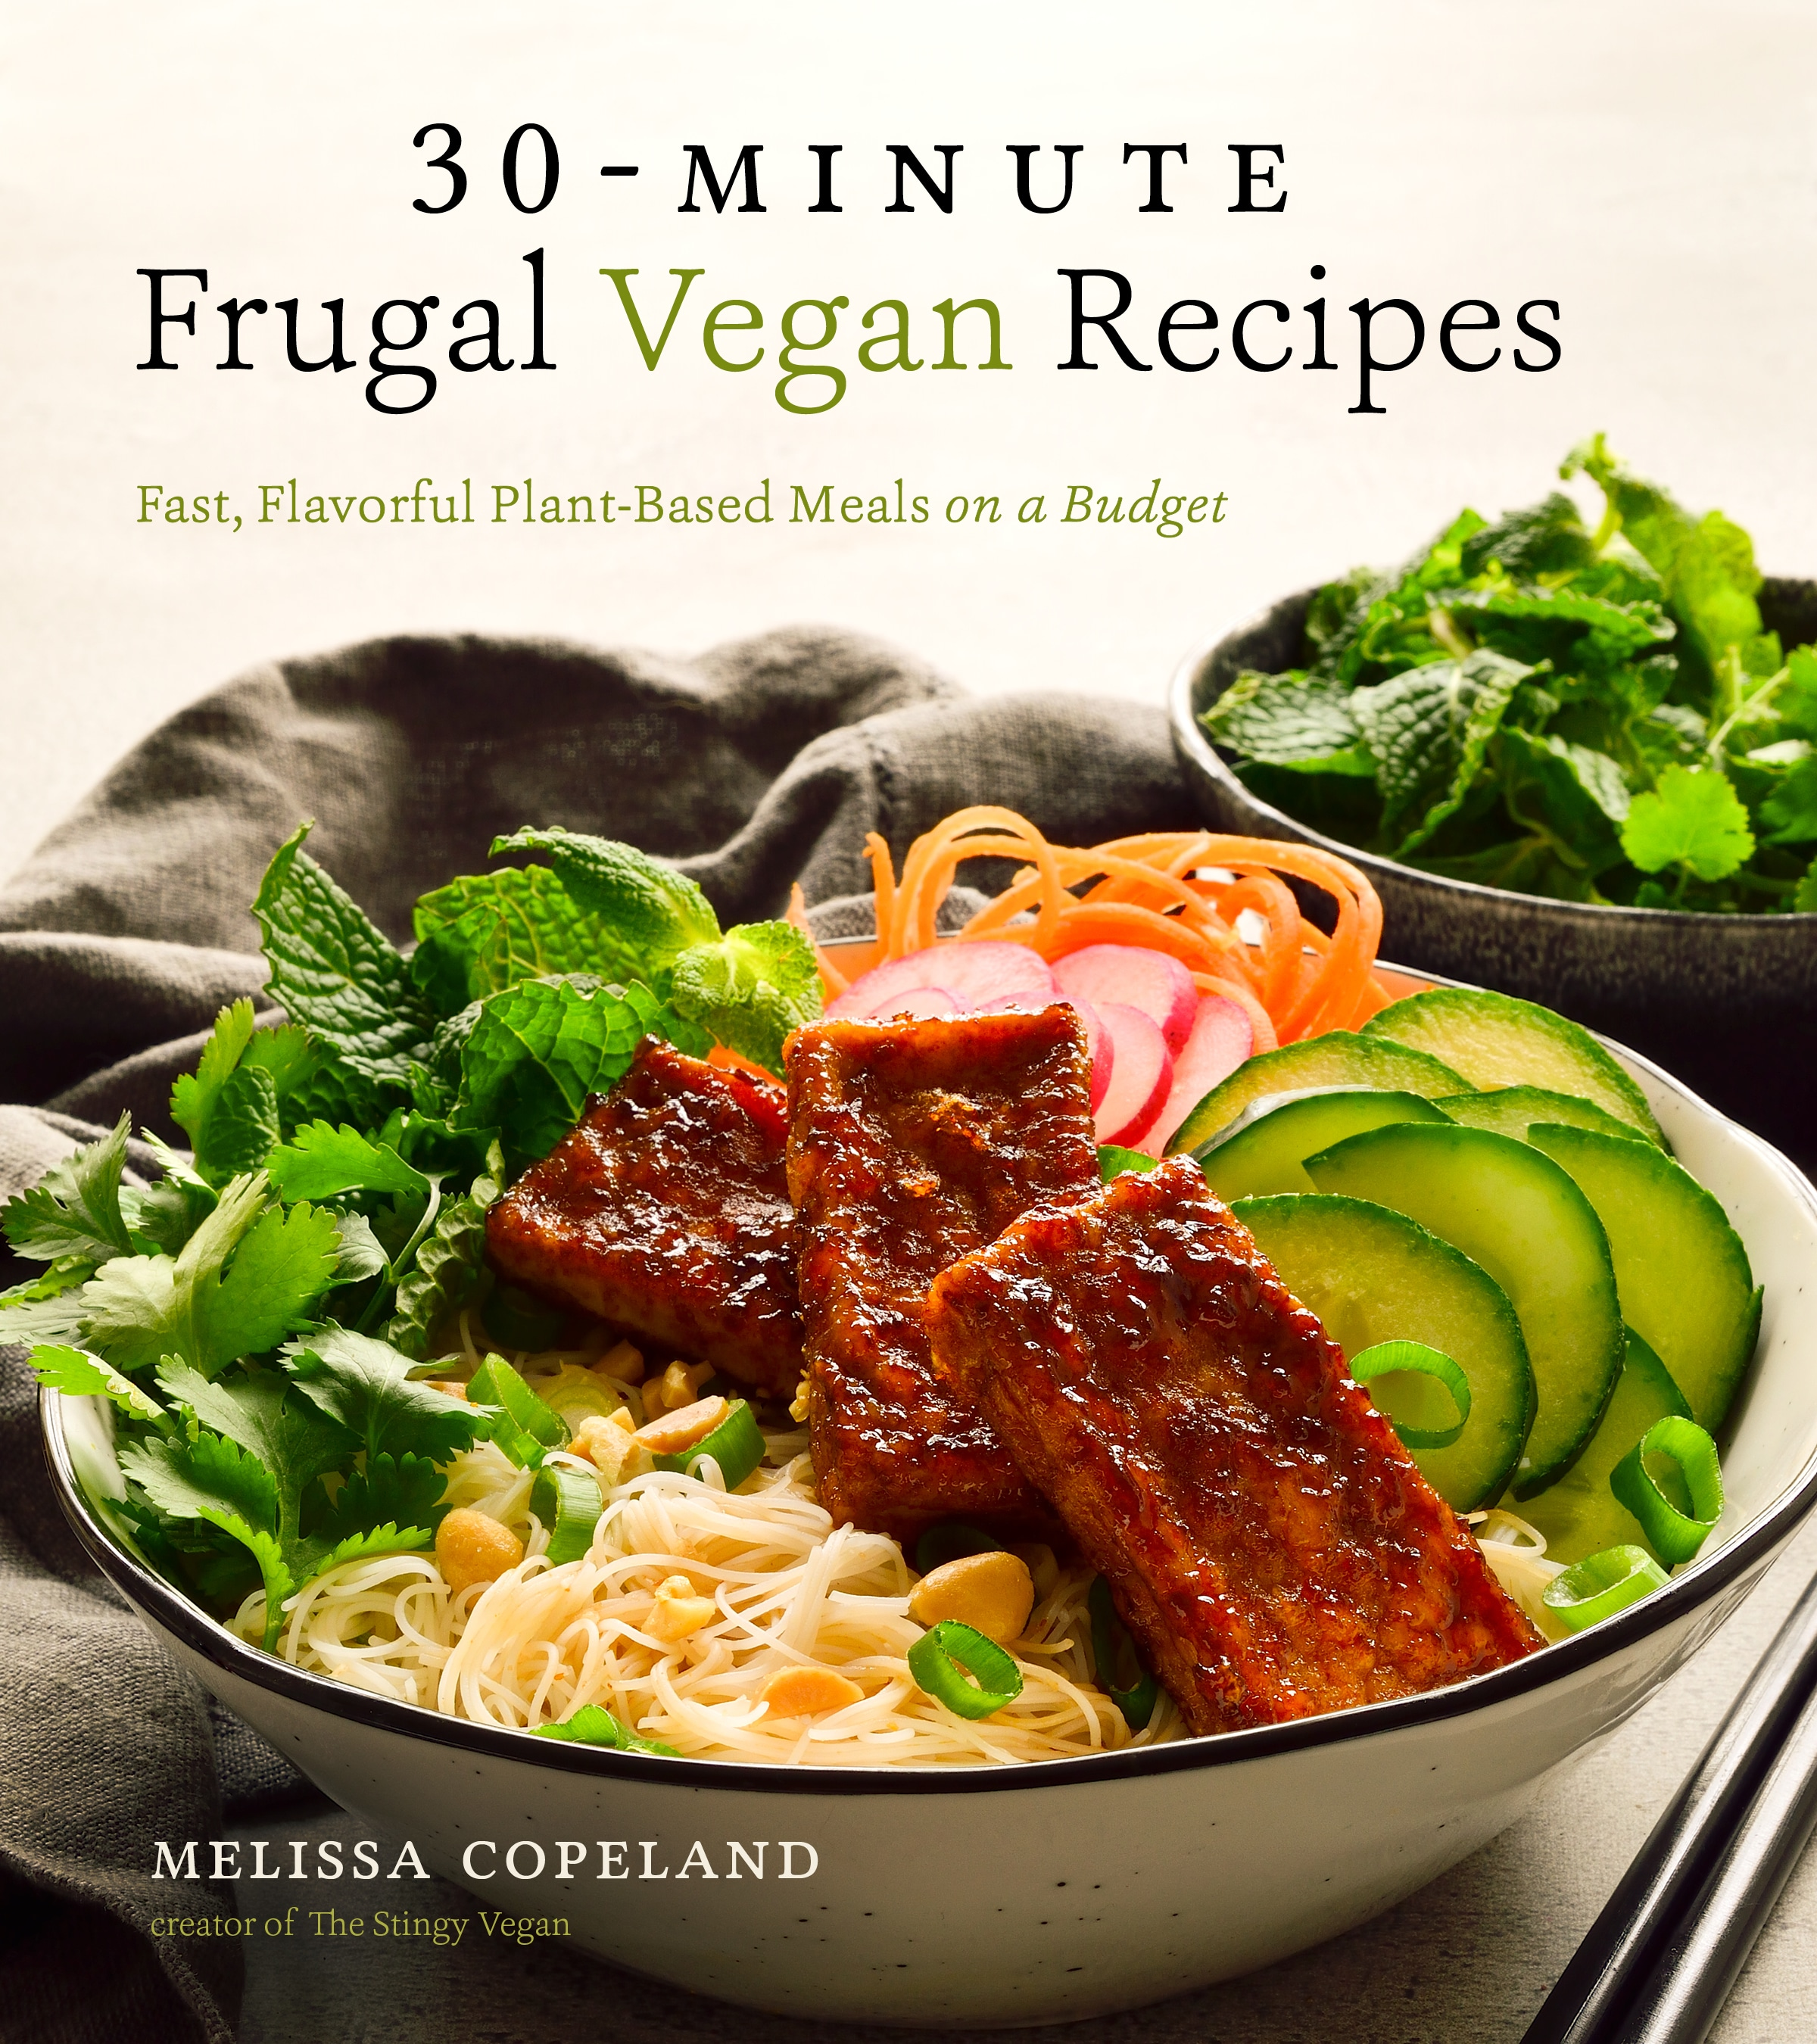 30-minute Frugal Vegan Recipes by Melissa Copeland book cover.